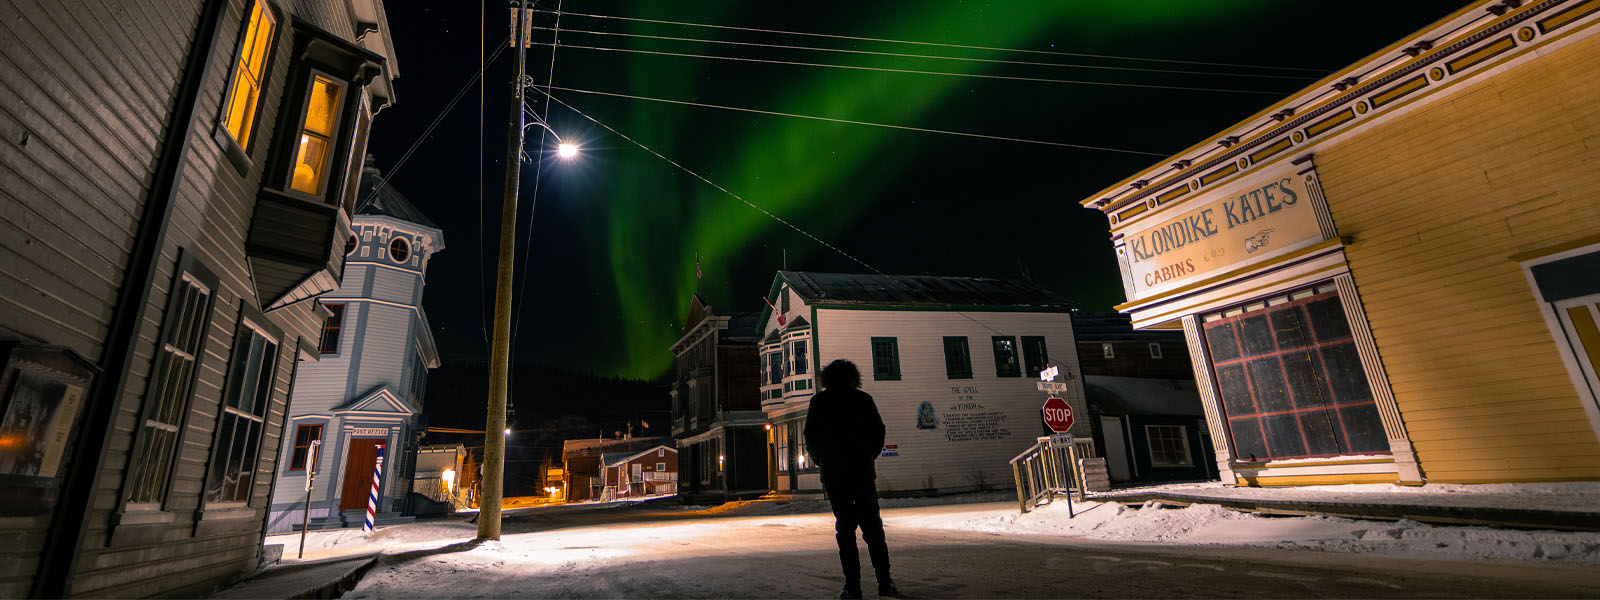 Watching the northern lights in town